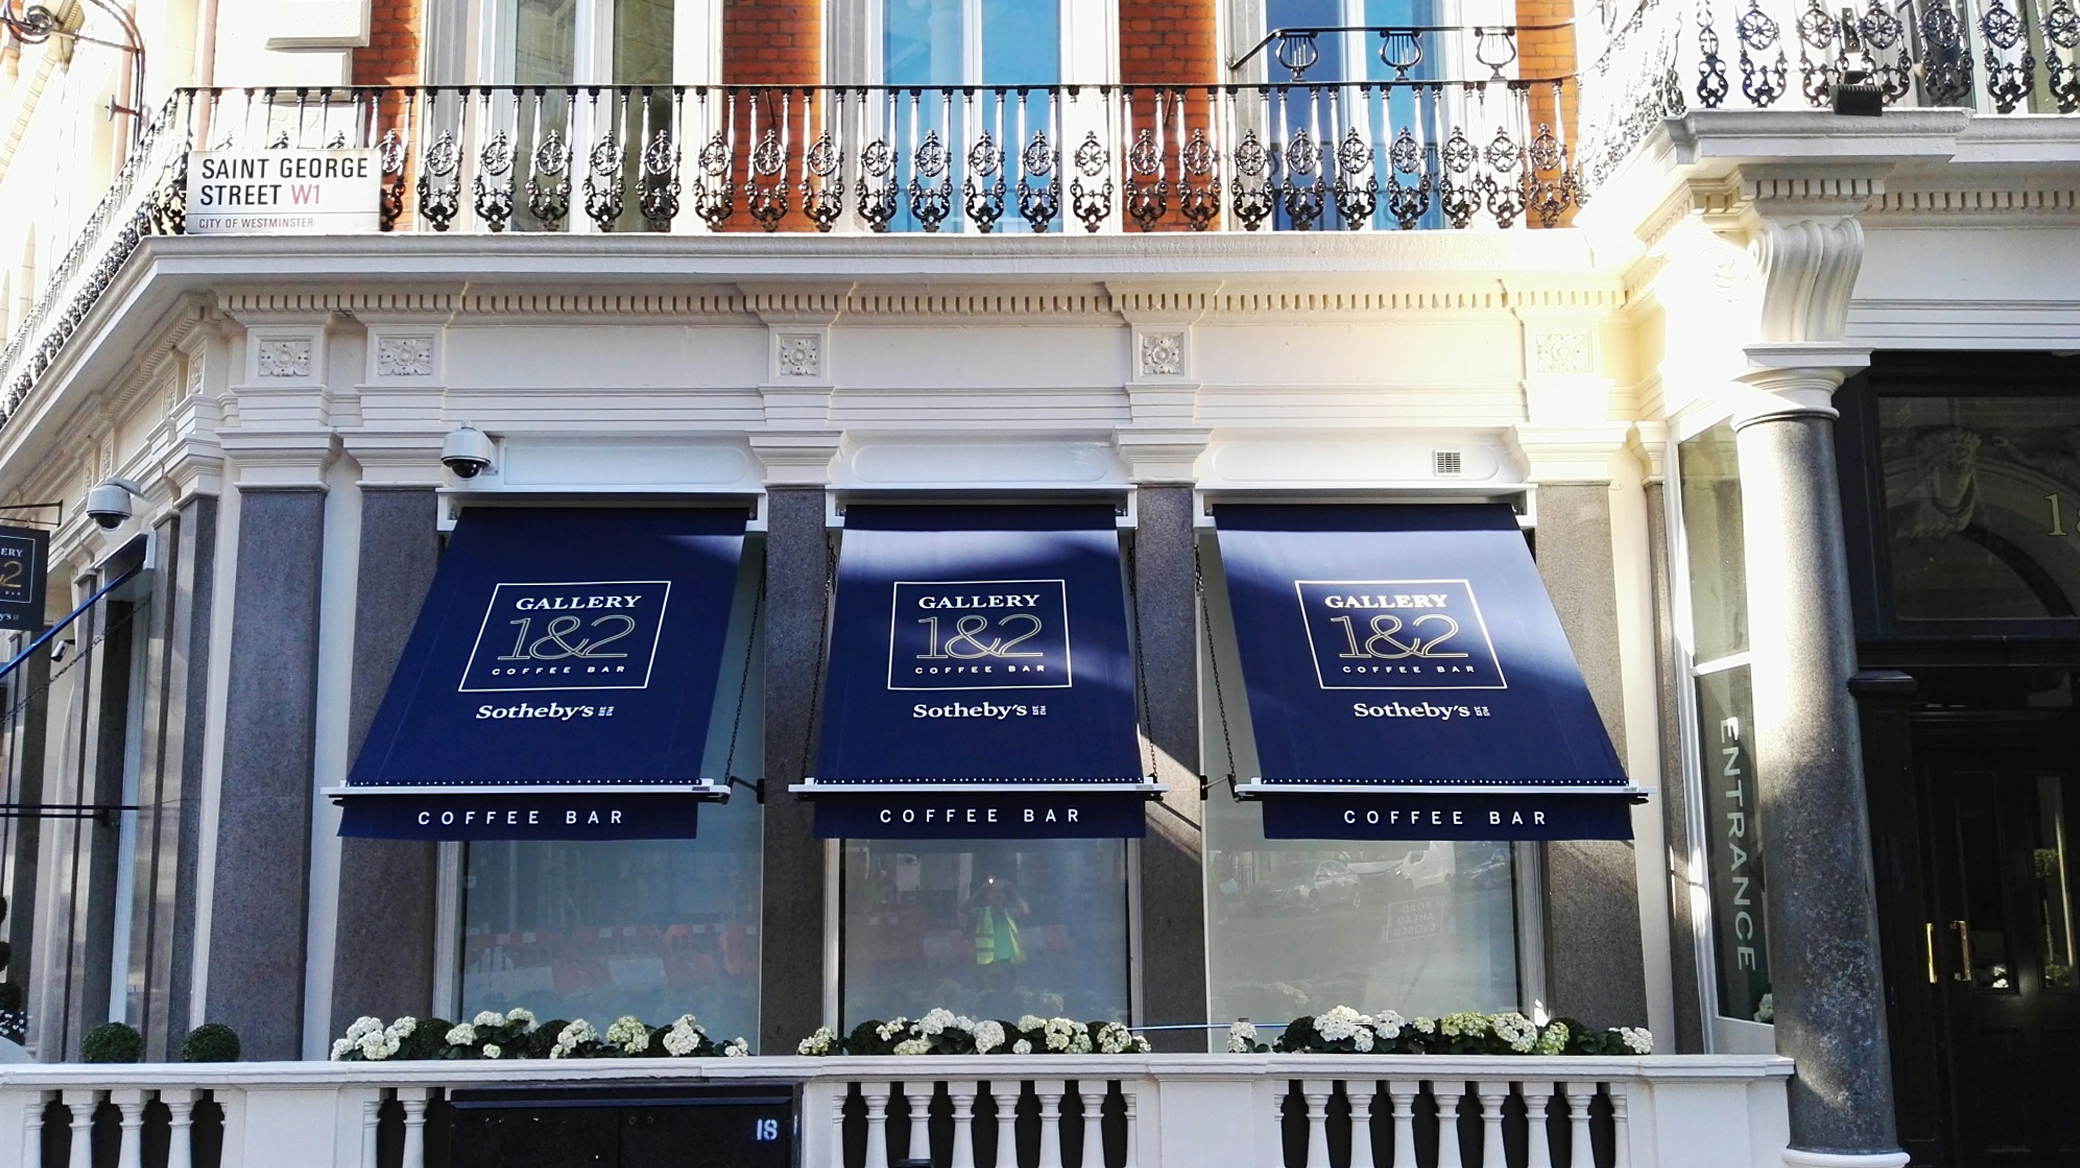 Sotheby's cafe awning